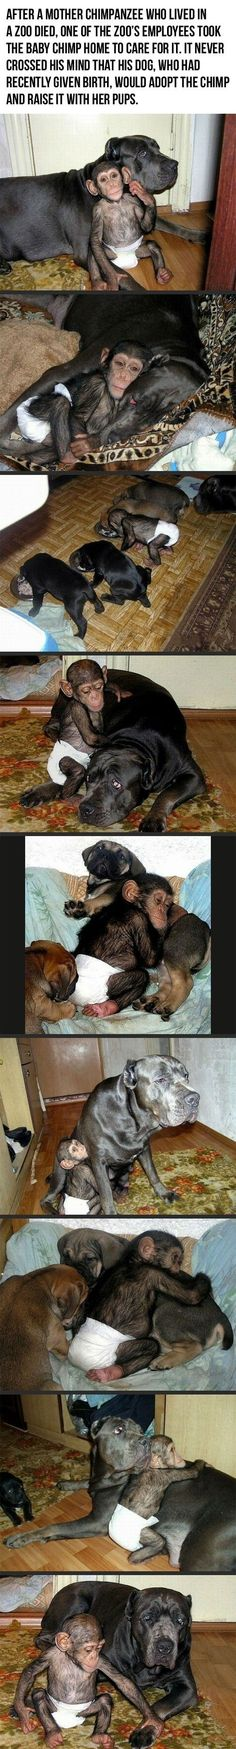 Love!  this is way too cute!  I want a chimp and a puppy!